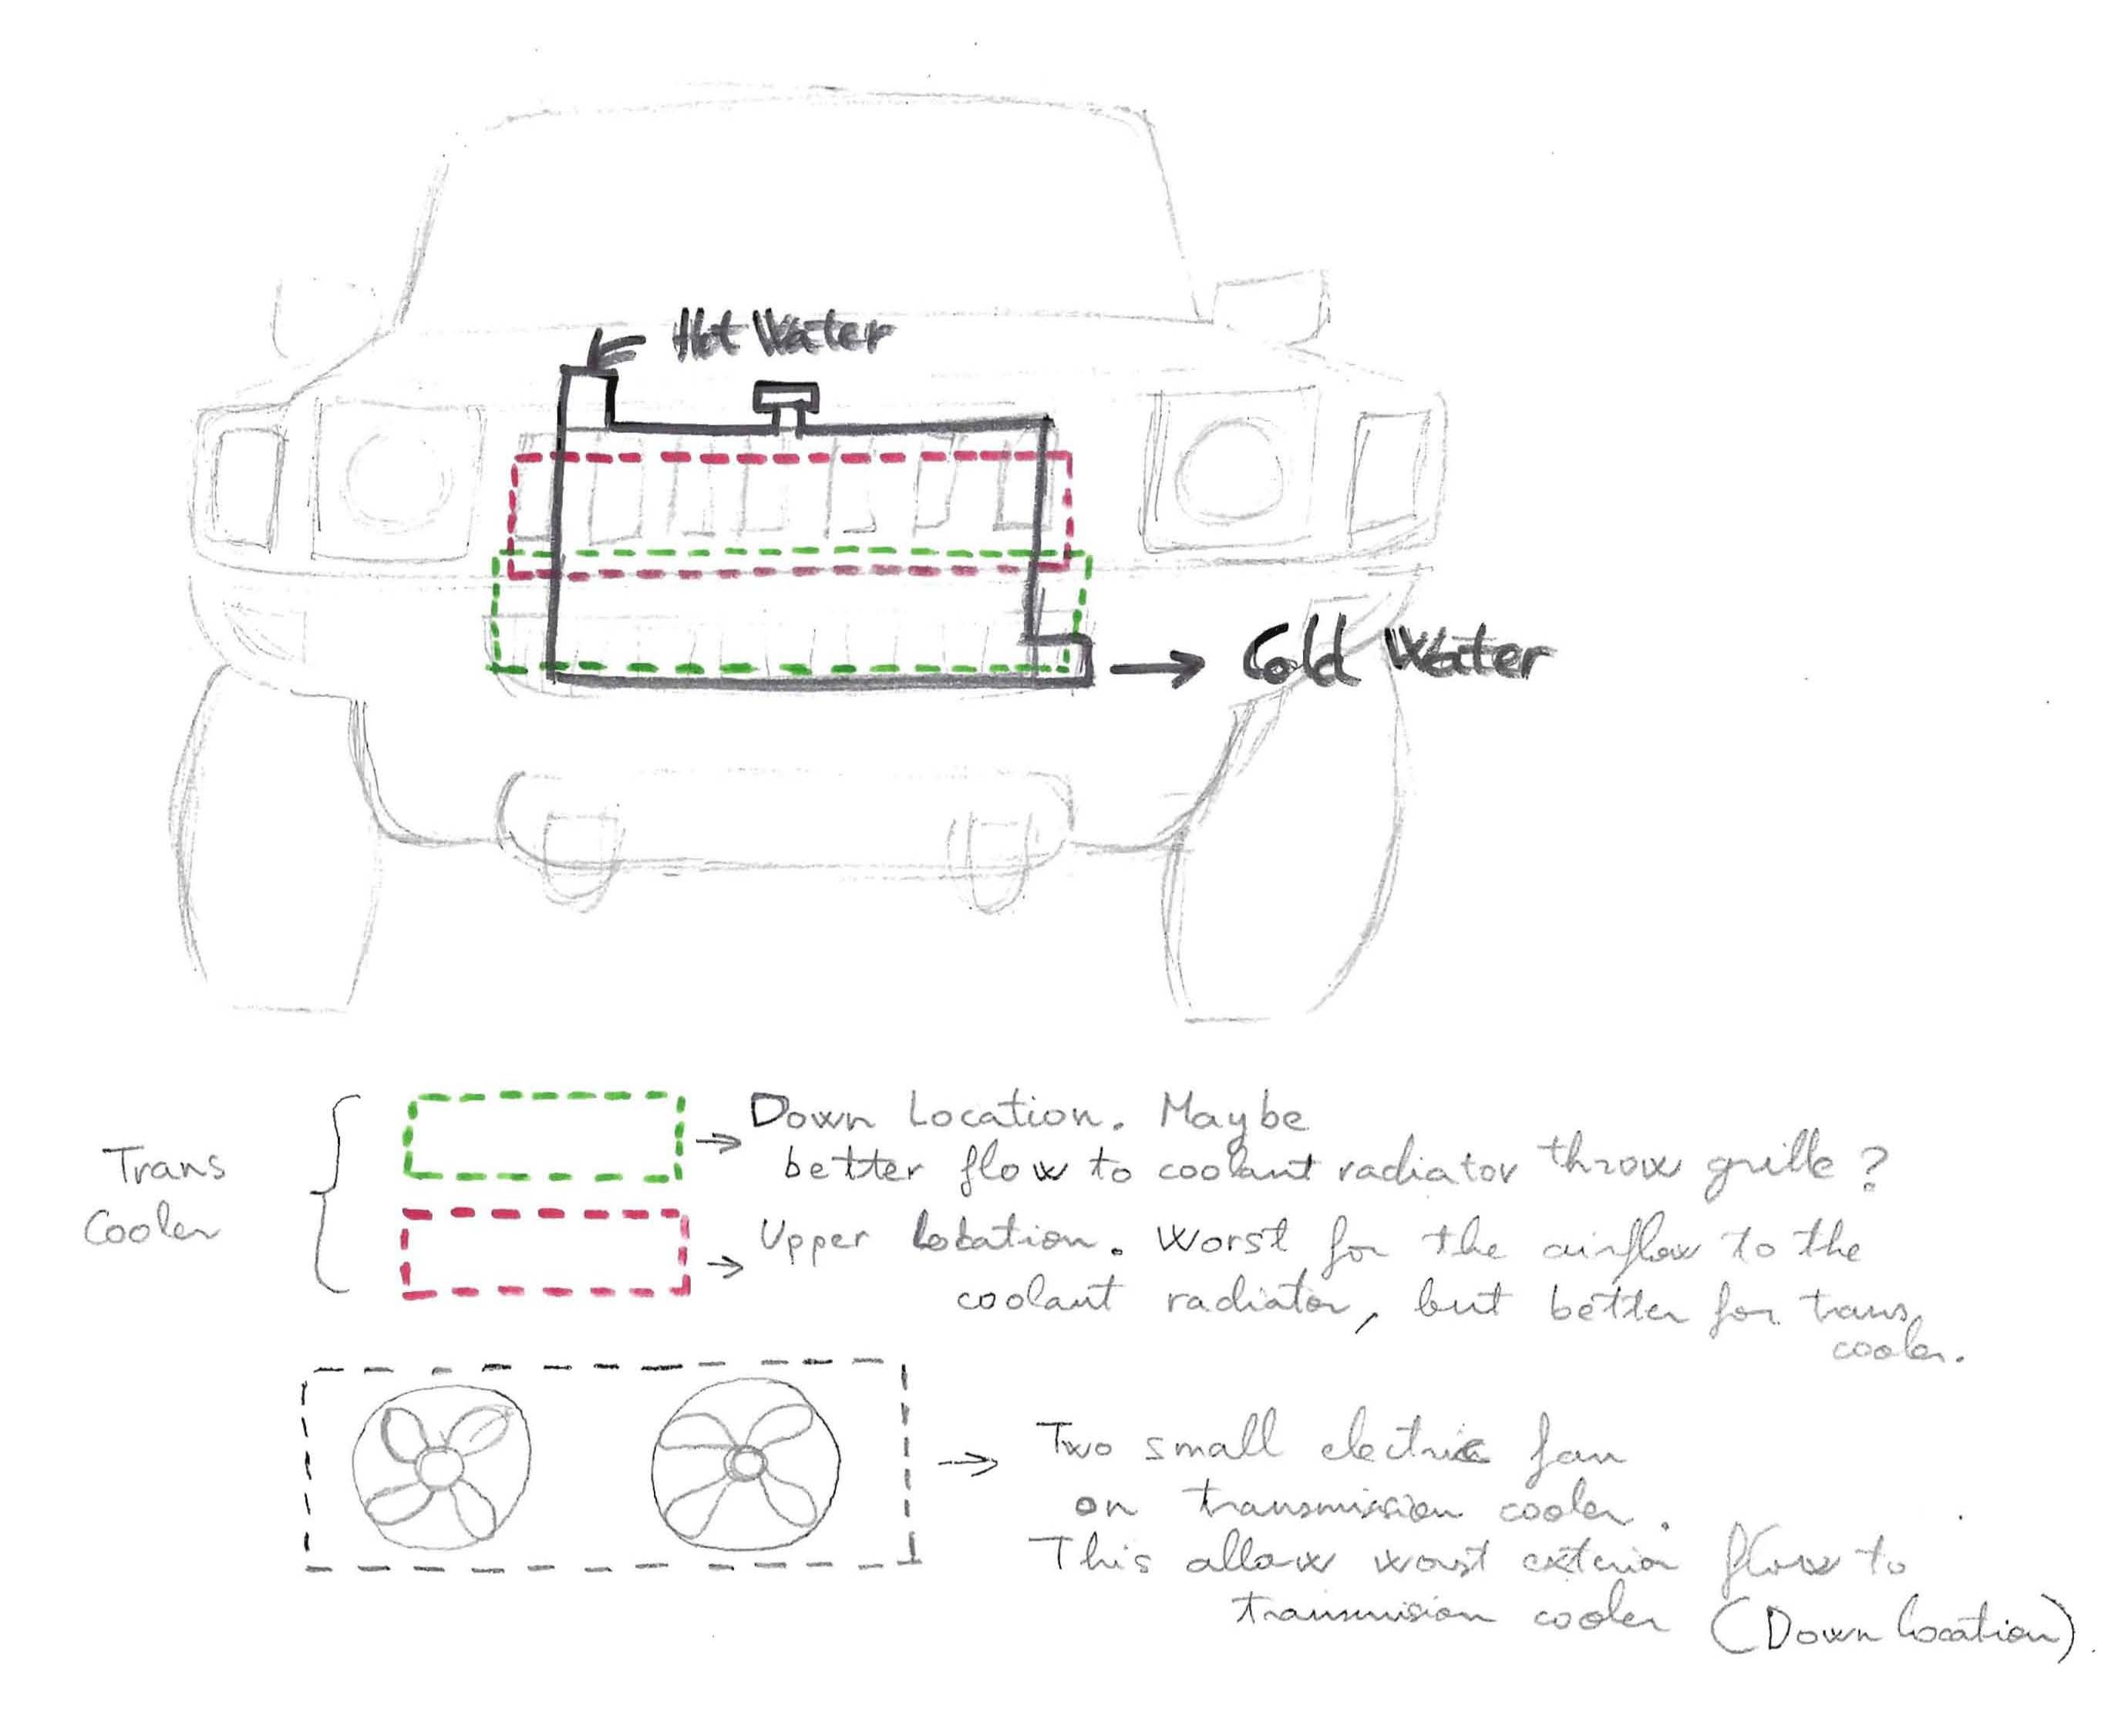 Transmission Cooler Installation Diagram Tru Cool Gvw Transmission Cooler Location Sahara Desert Trip